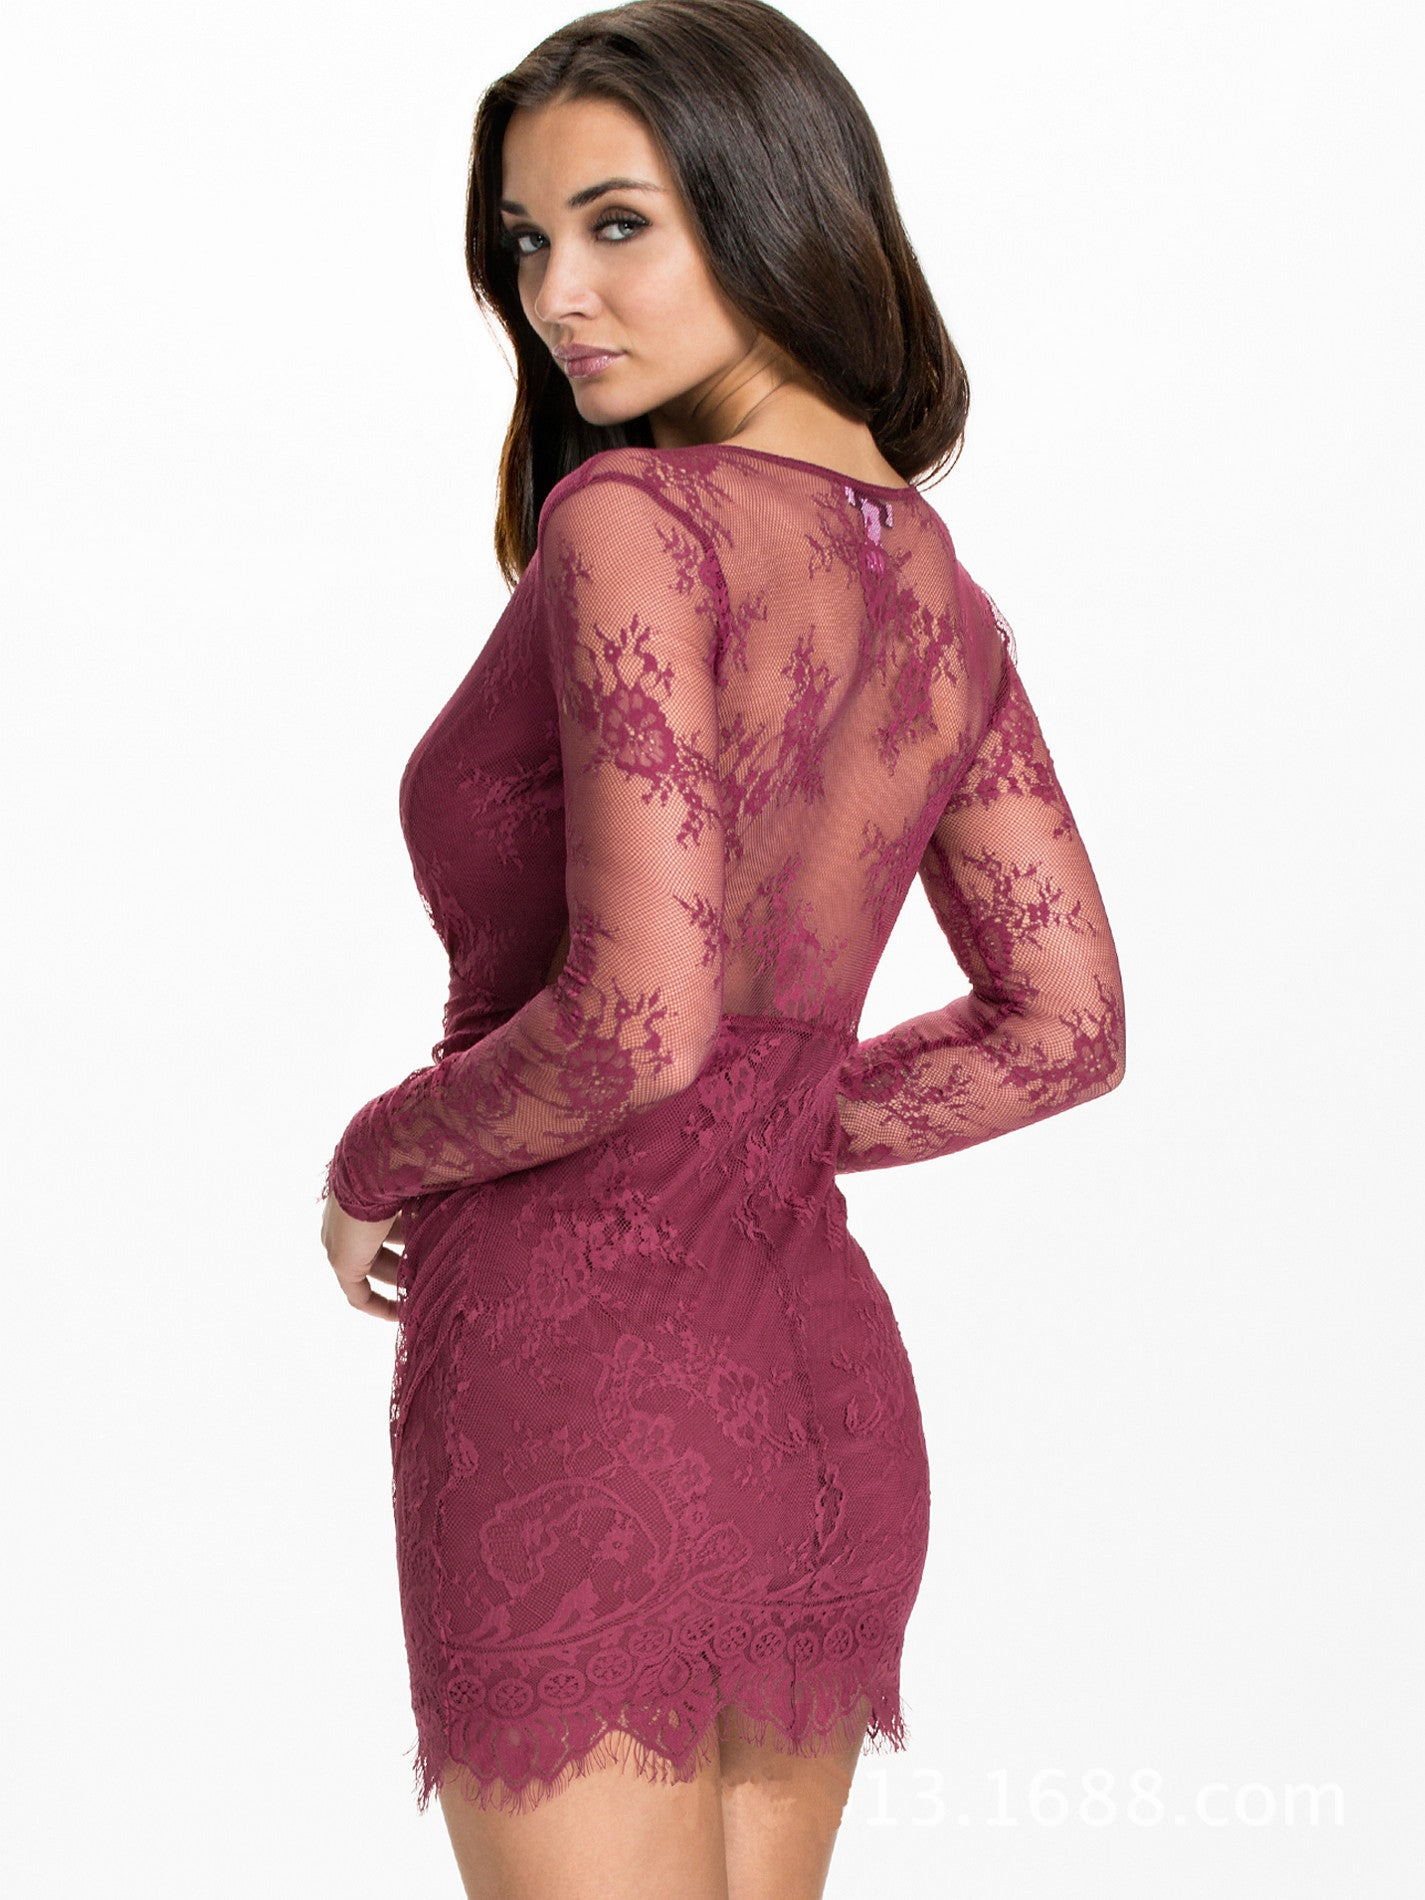 Her Trendy Asymmetrical Sexy Bodycon Maroon Lace Party Mini Dress